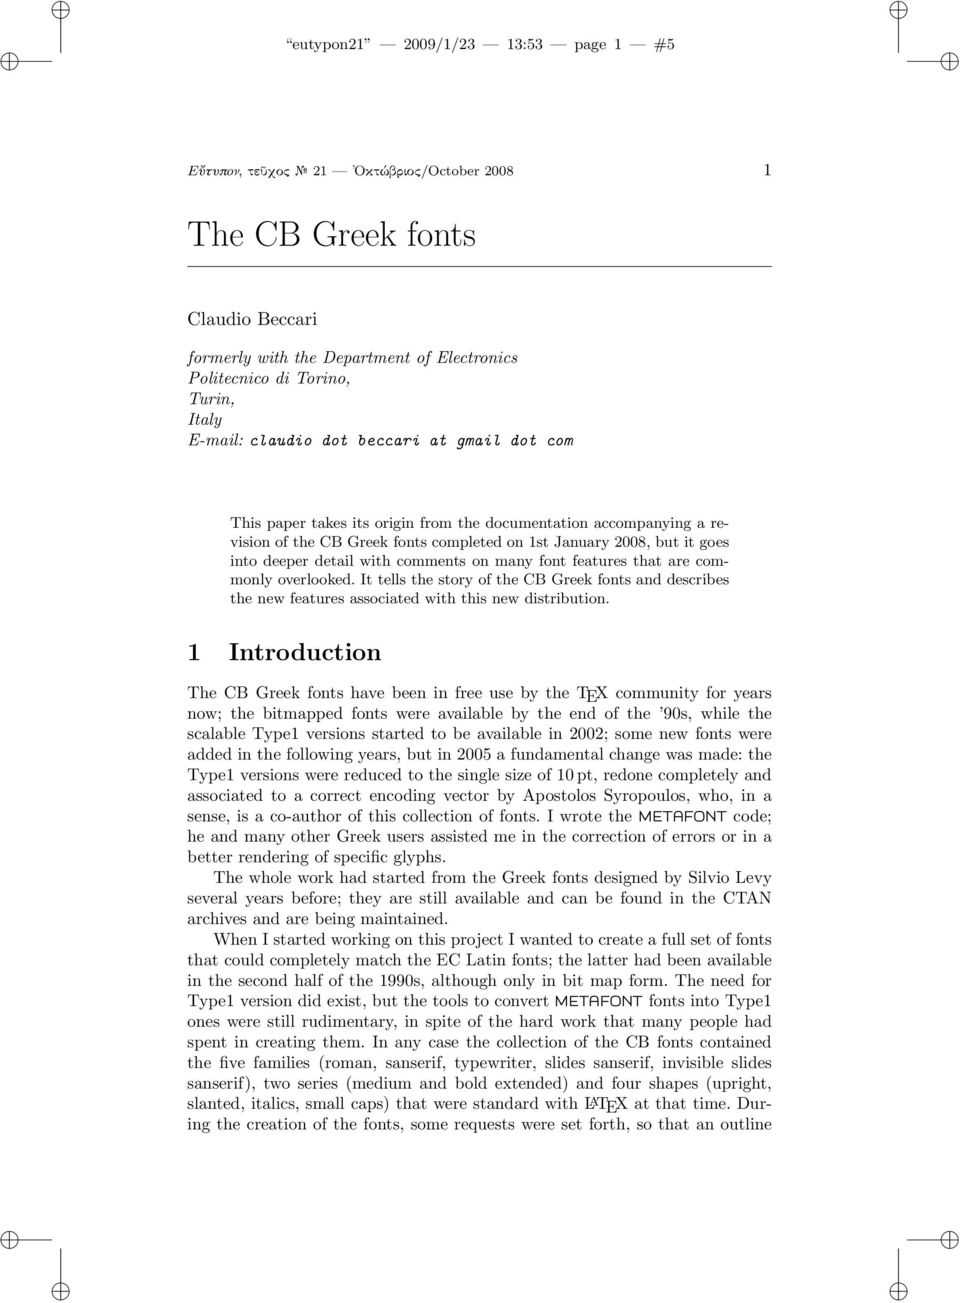 detail with comments on many font features that are commonly overlooked. It tells the story of the CB Greek fonts and describes the new features associated with this new distribution.